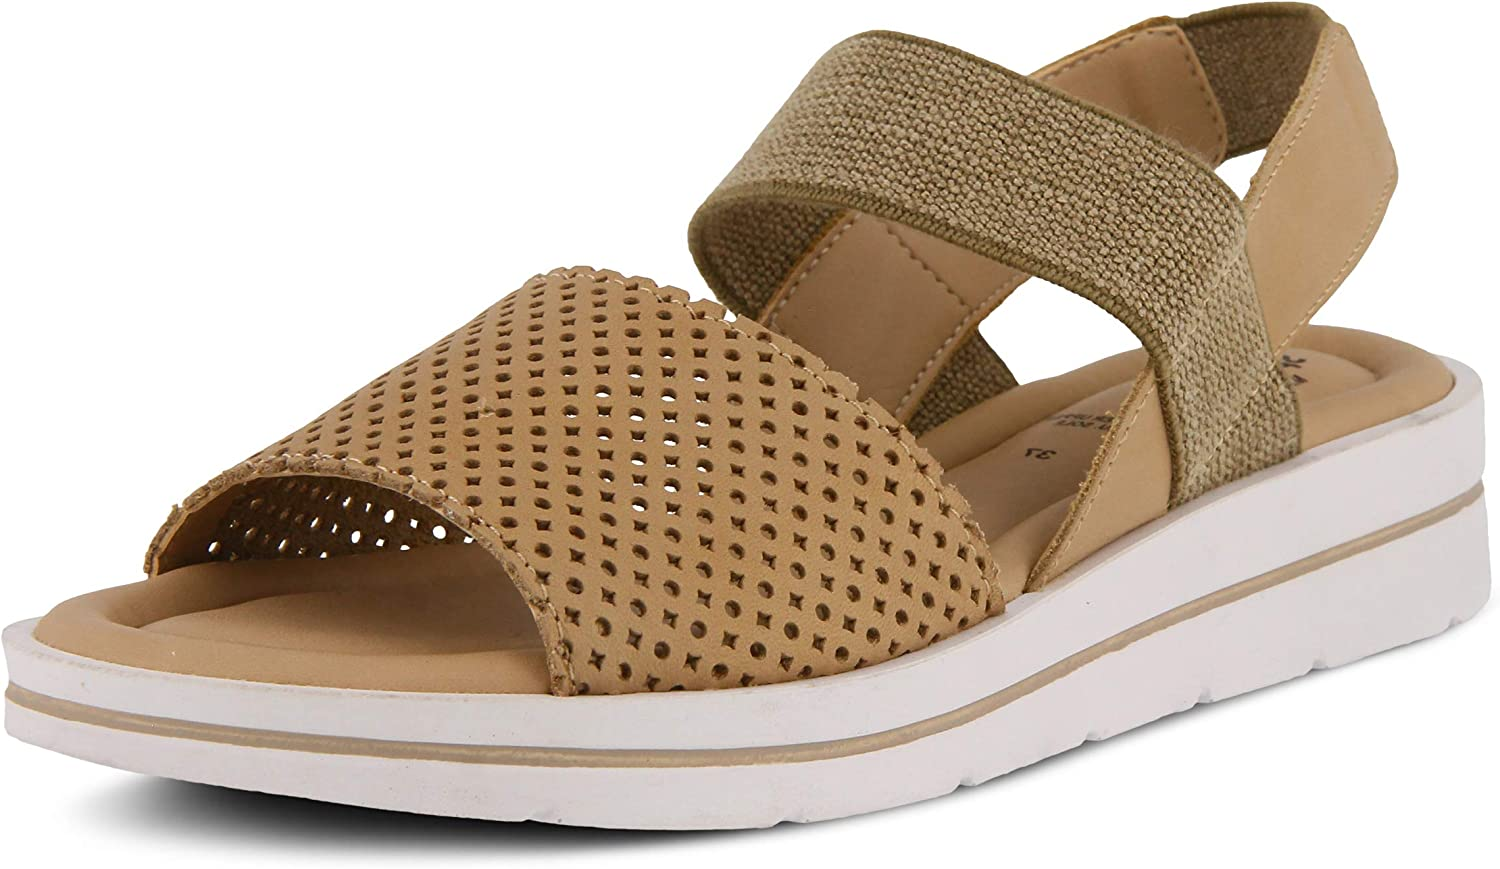 Spring Step Women's Travel Leather Ankle Strap Sandal